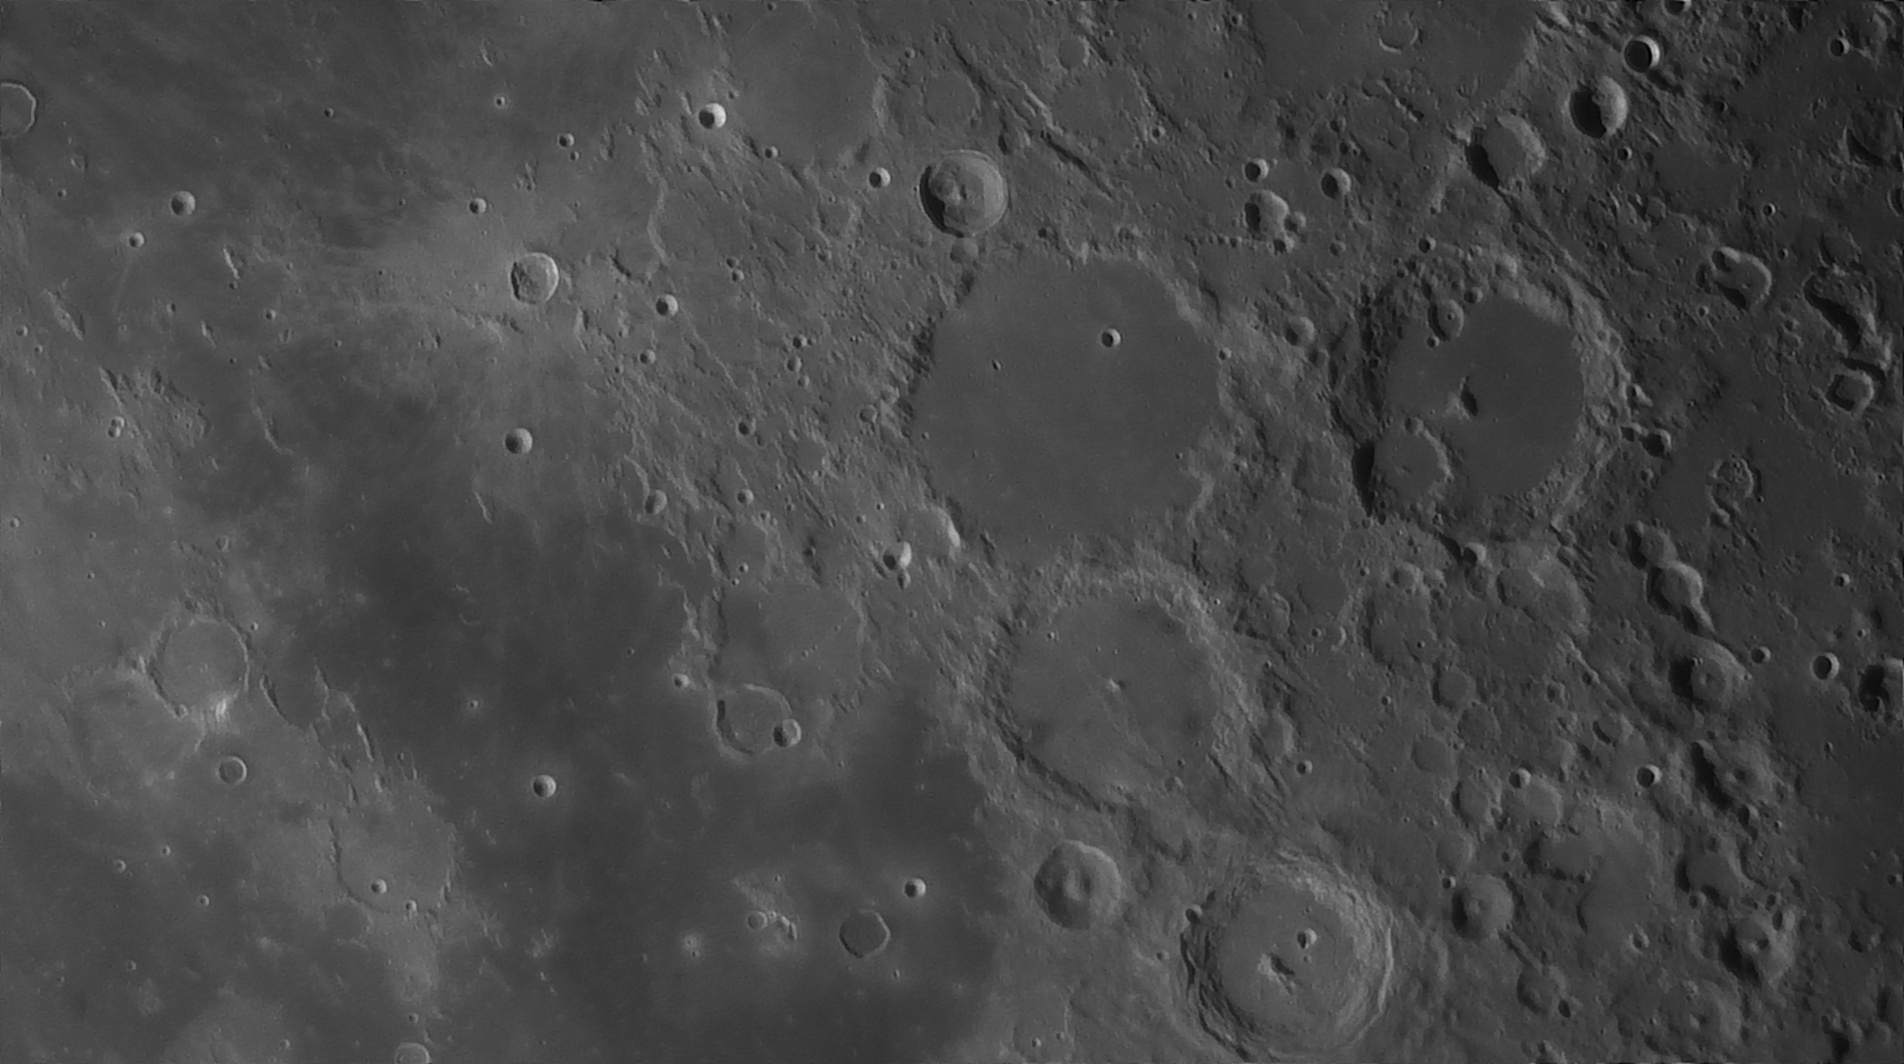 5e5195ce727da_Moon_054704_160120_ZWOASI290MM_Rouge_23A_AS_P35_lapl6_ap1067_AI_Deconvolution_15--.jpg.9cab1a4a6eb5fd9d3d28eb06510f8328.jpg